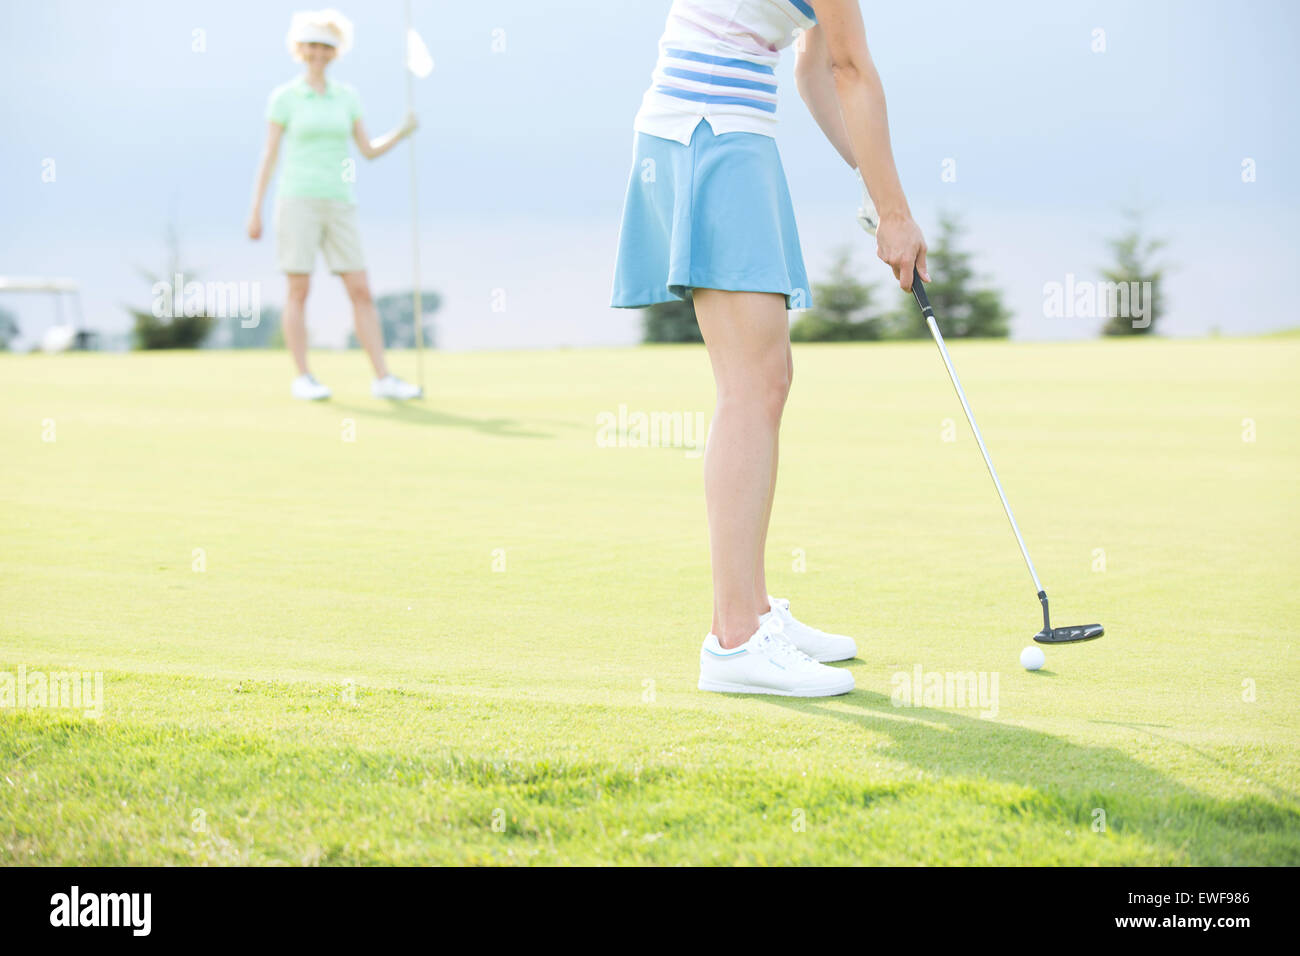 Low section of woman playing golf with female friend - Stock Image